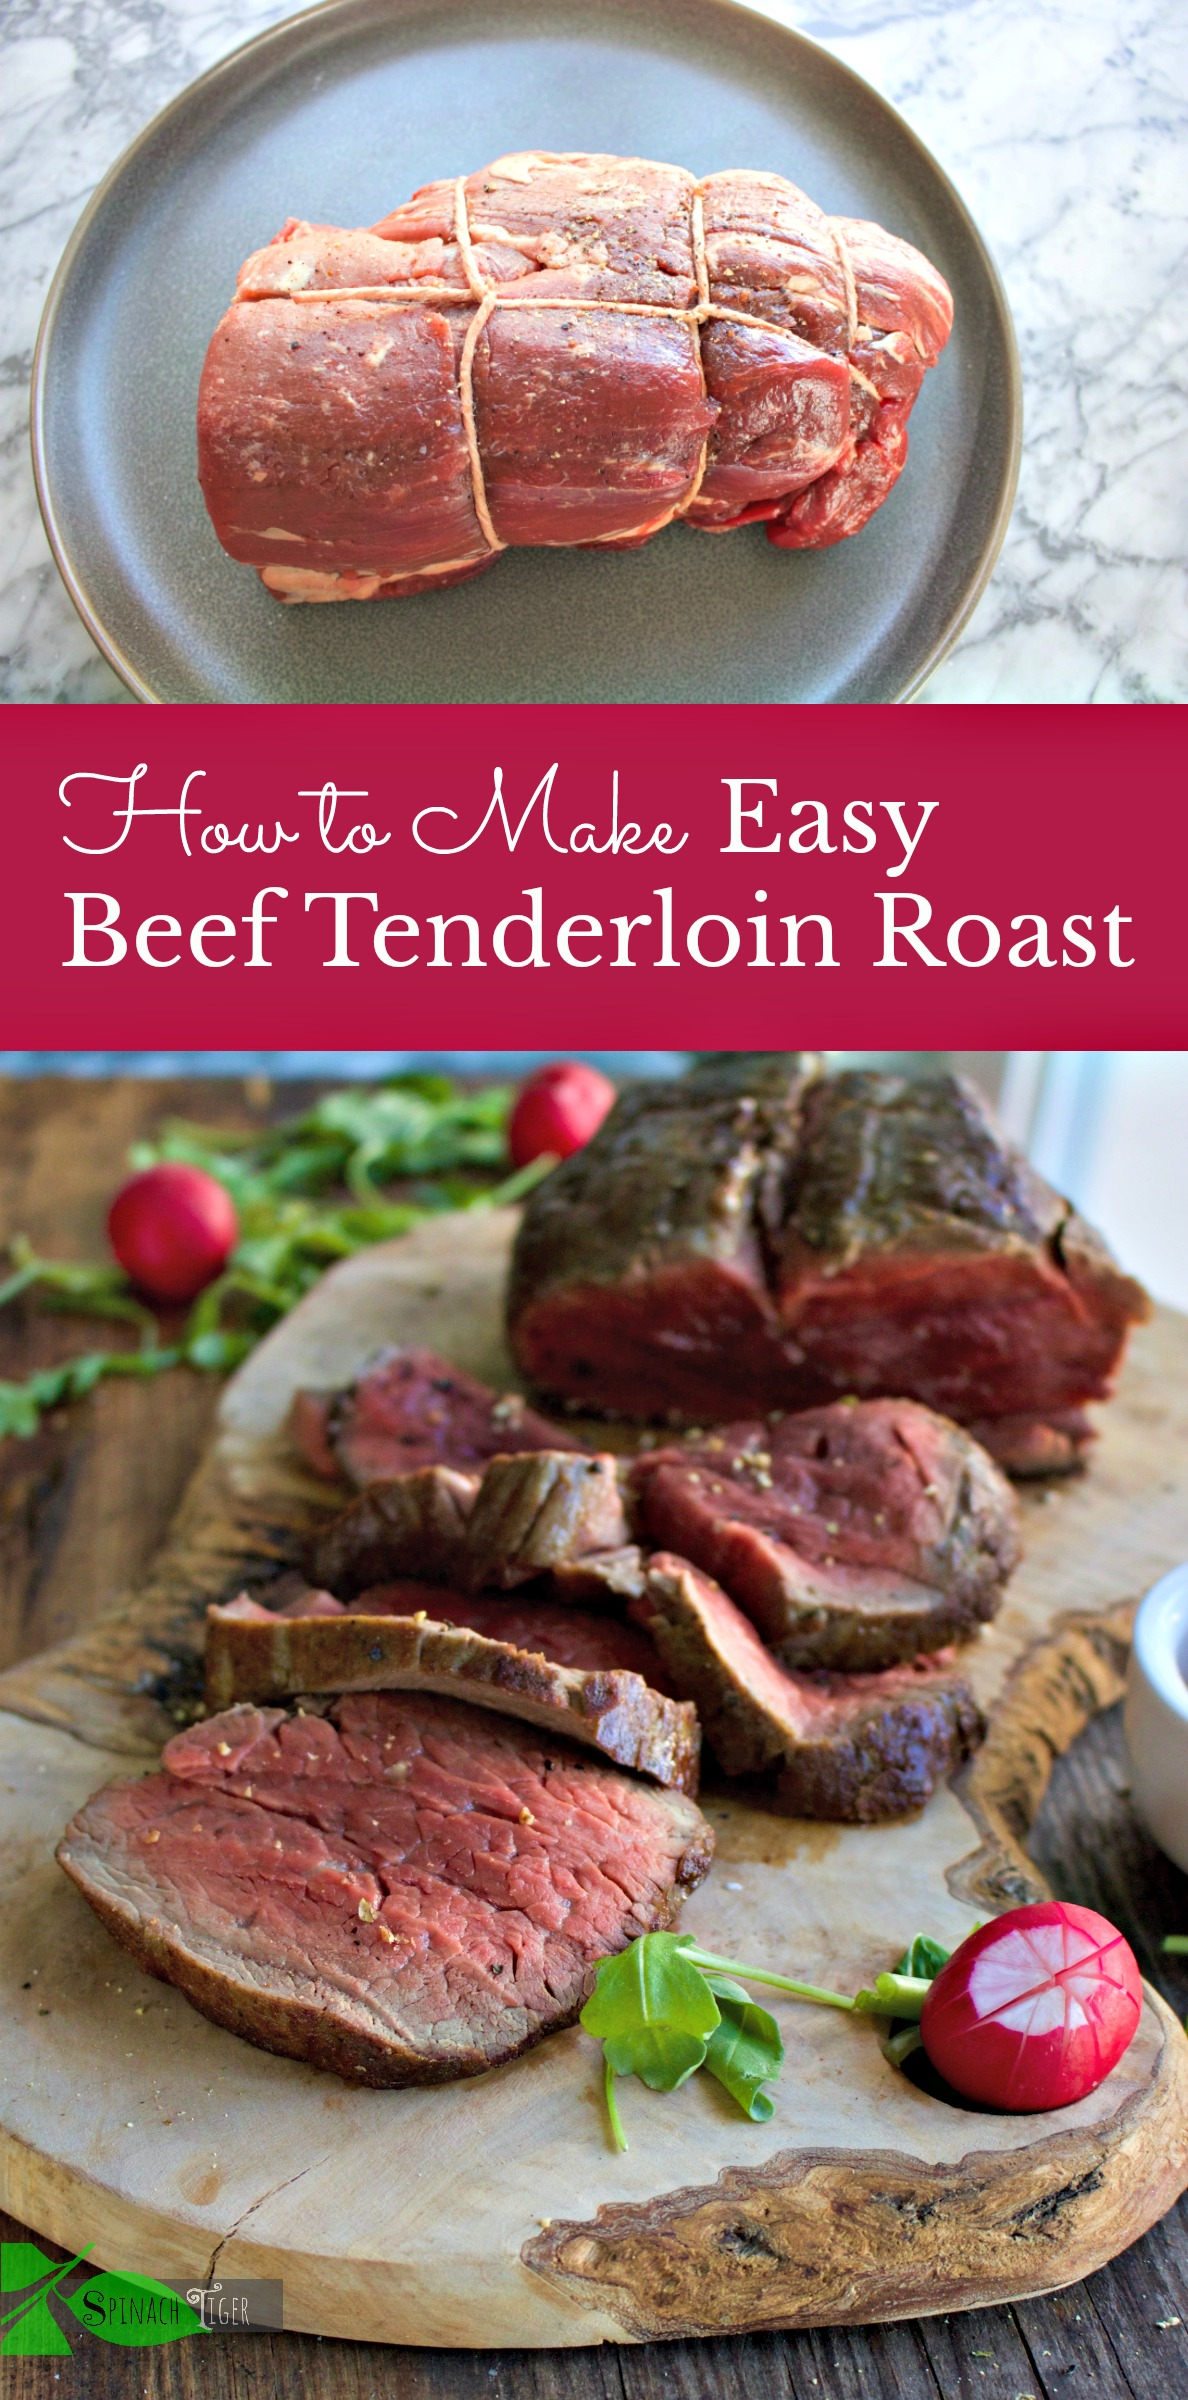 Preparing beef tenderloin couldn't be easier. How to sear, and roast beef tenderloin with sides to go with this perfect dinner.